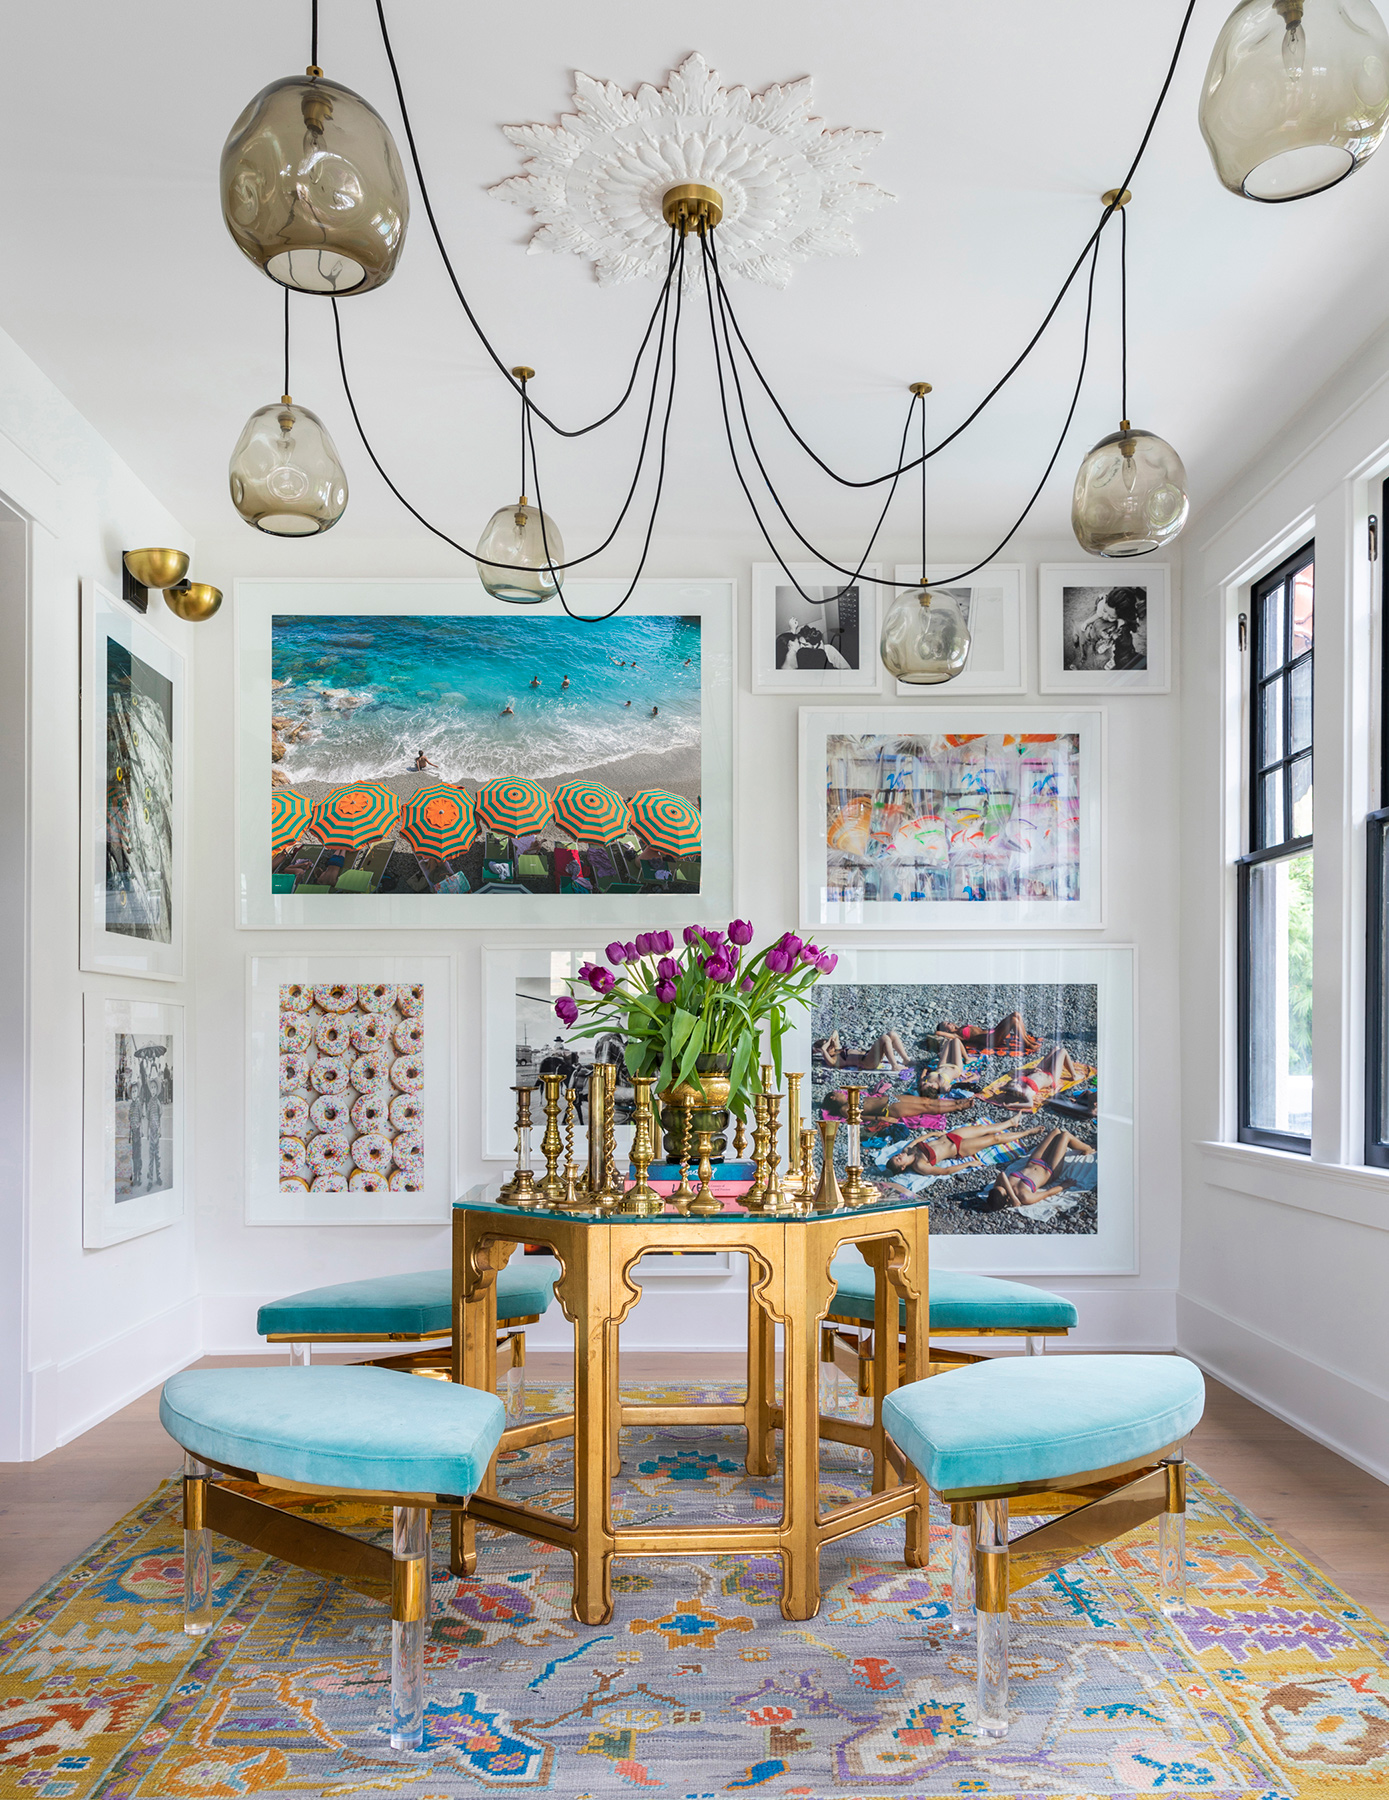 beautiful photography in luxury dining room - Creative Tonic